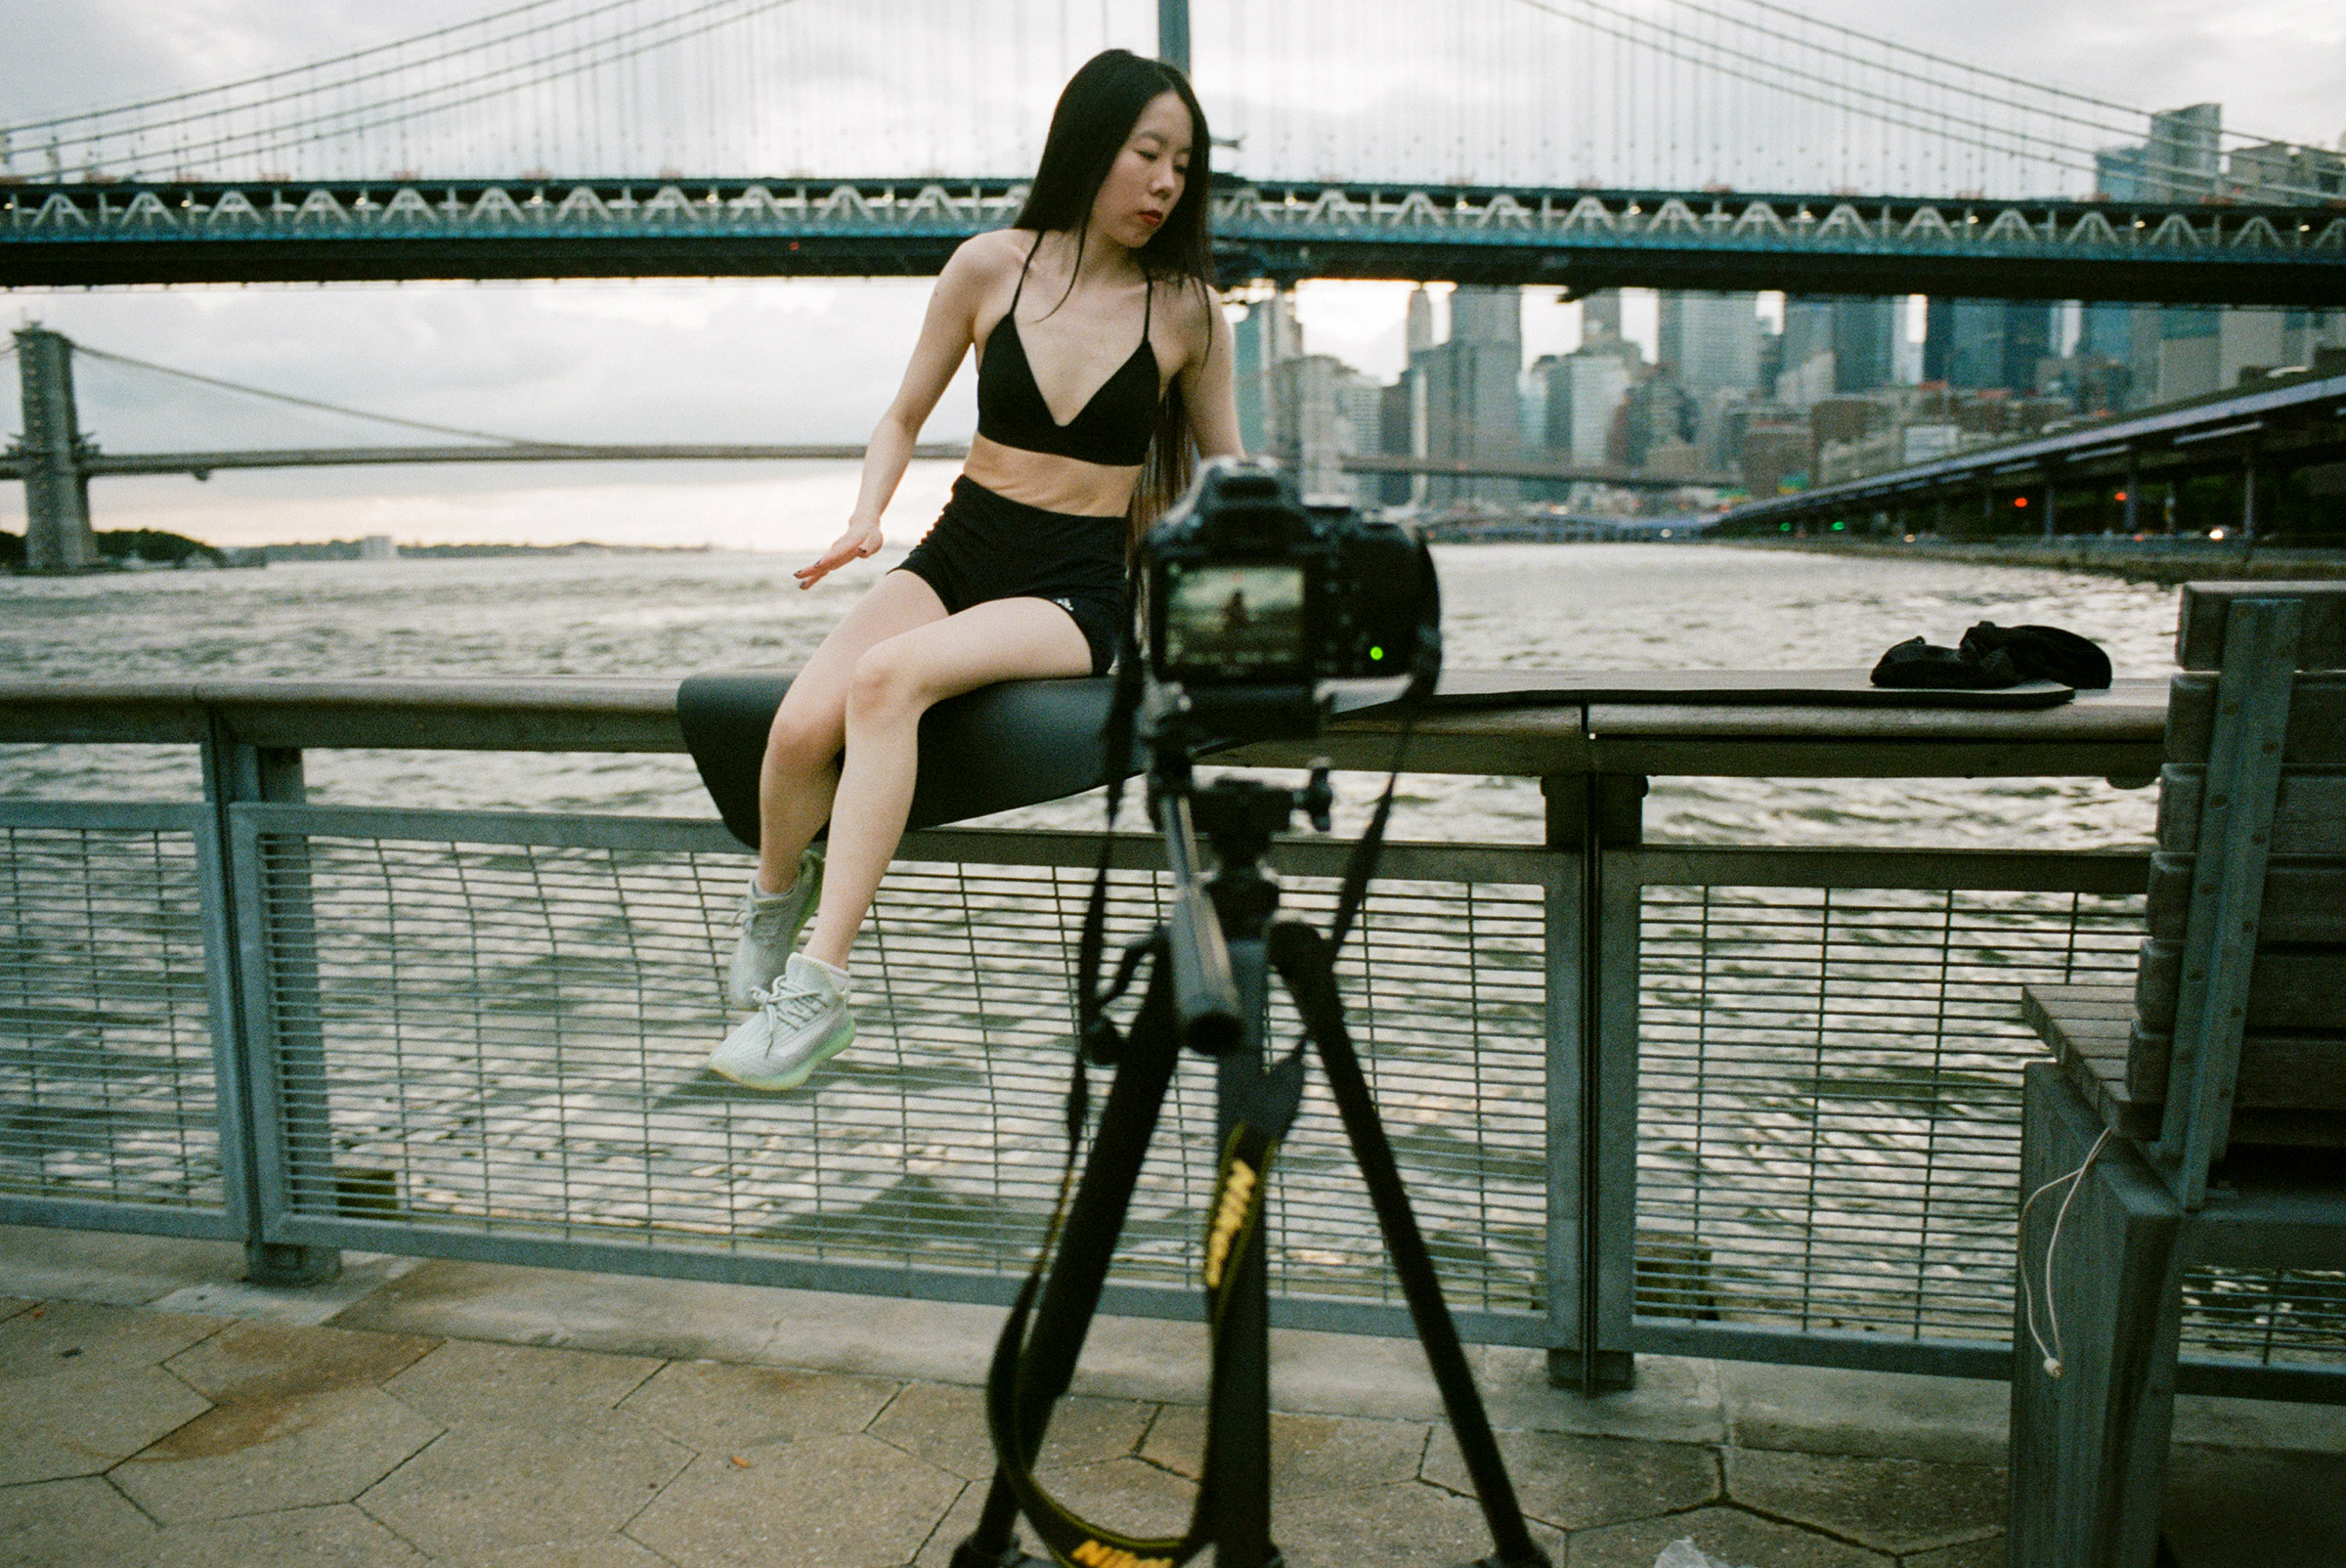 A thrill-seeking content creator balances on a narrow rail over the East River for a photo, Aug. 23, 2021.